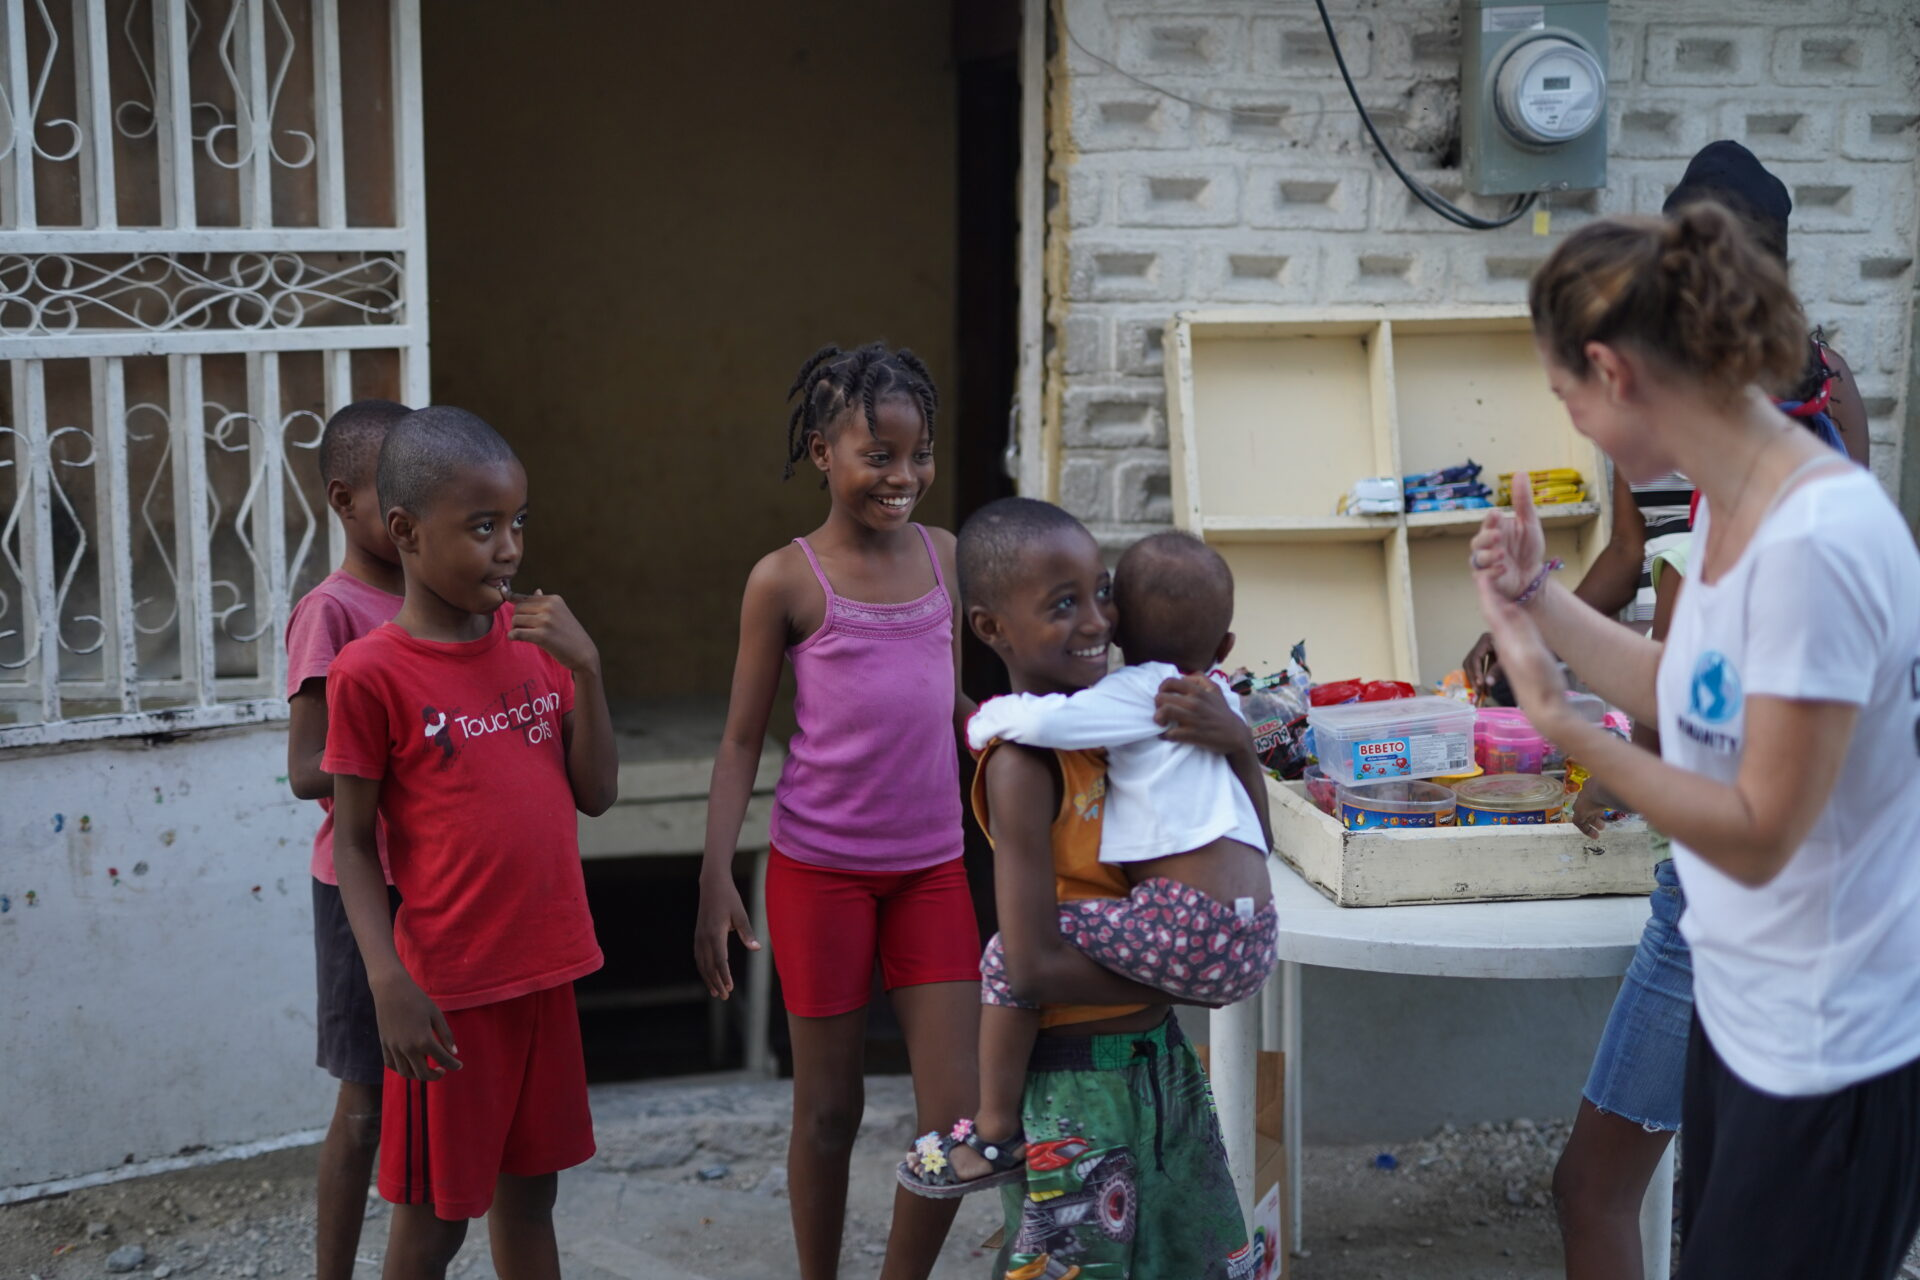 Haitian children in ghetto